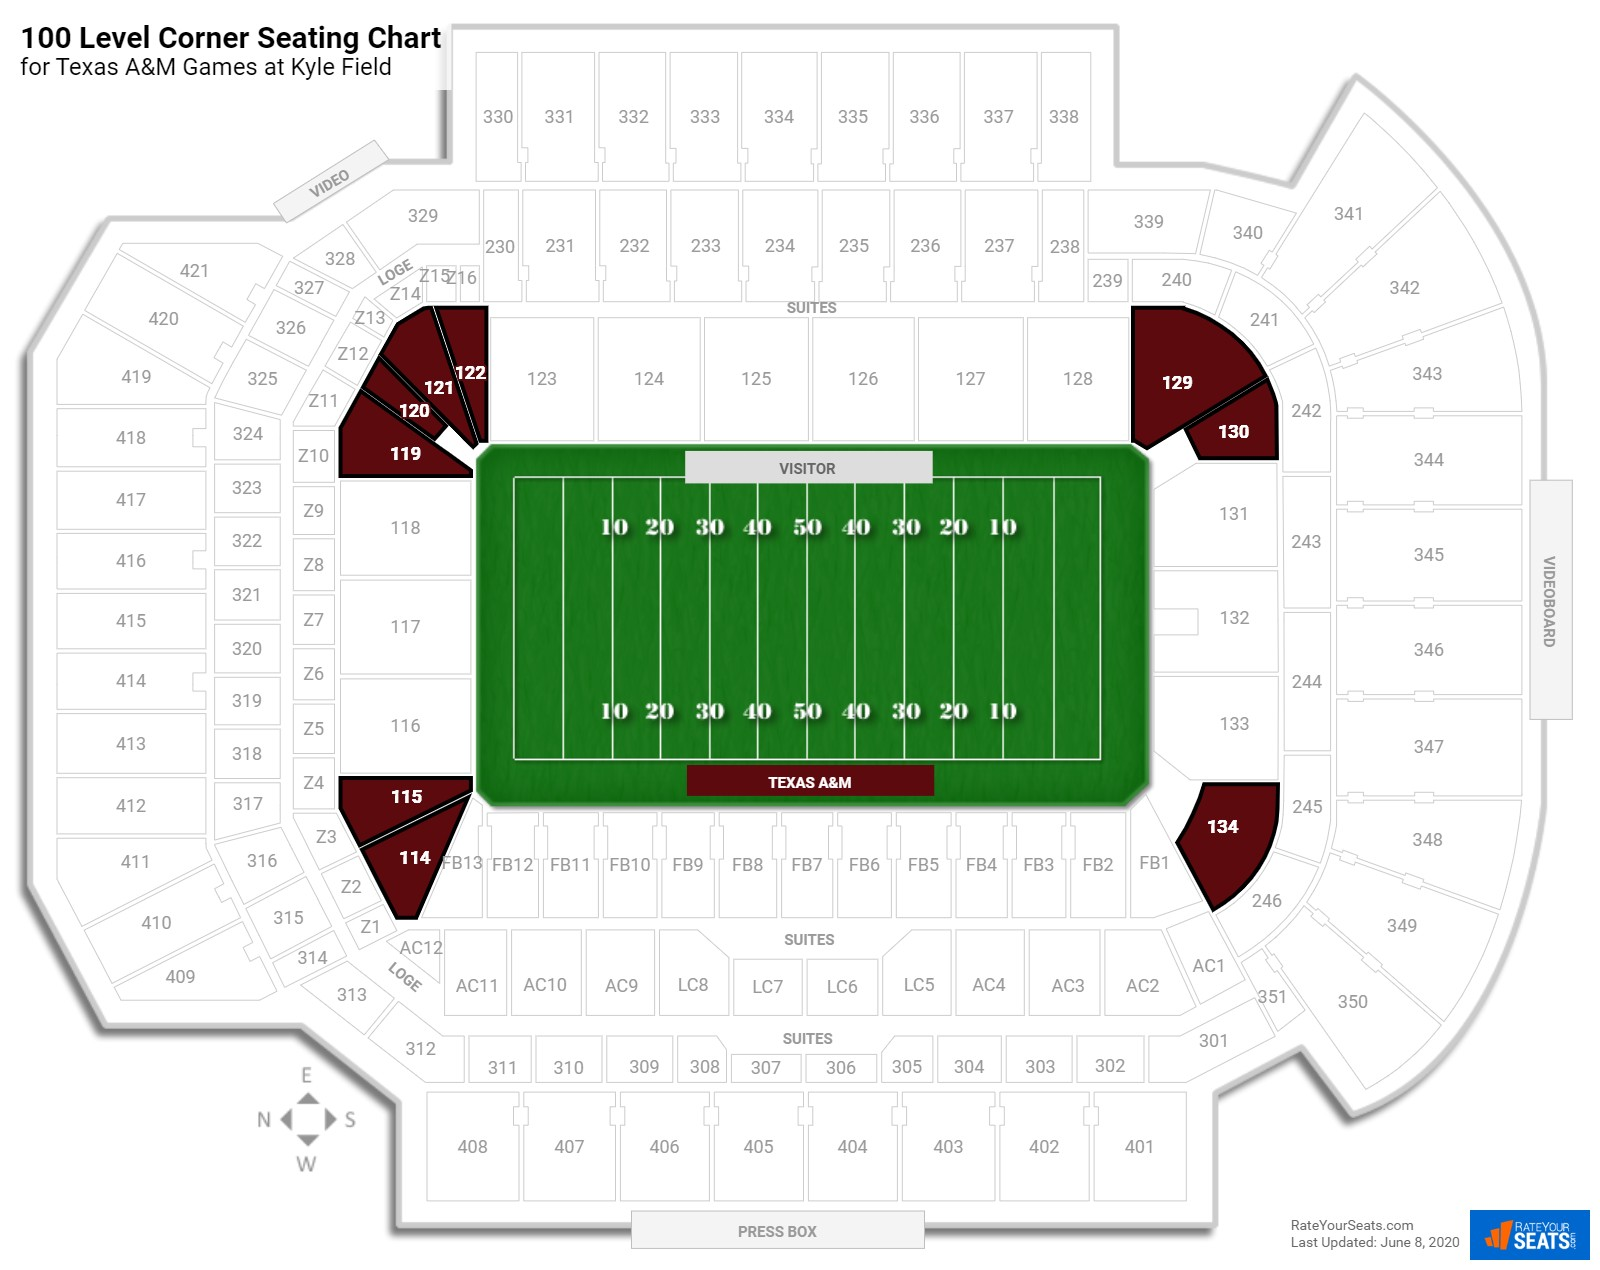 Kyle Field 100 Level Corner seating chart